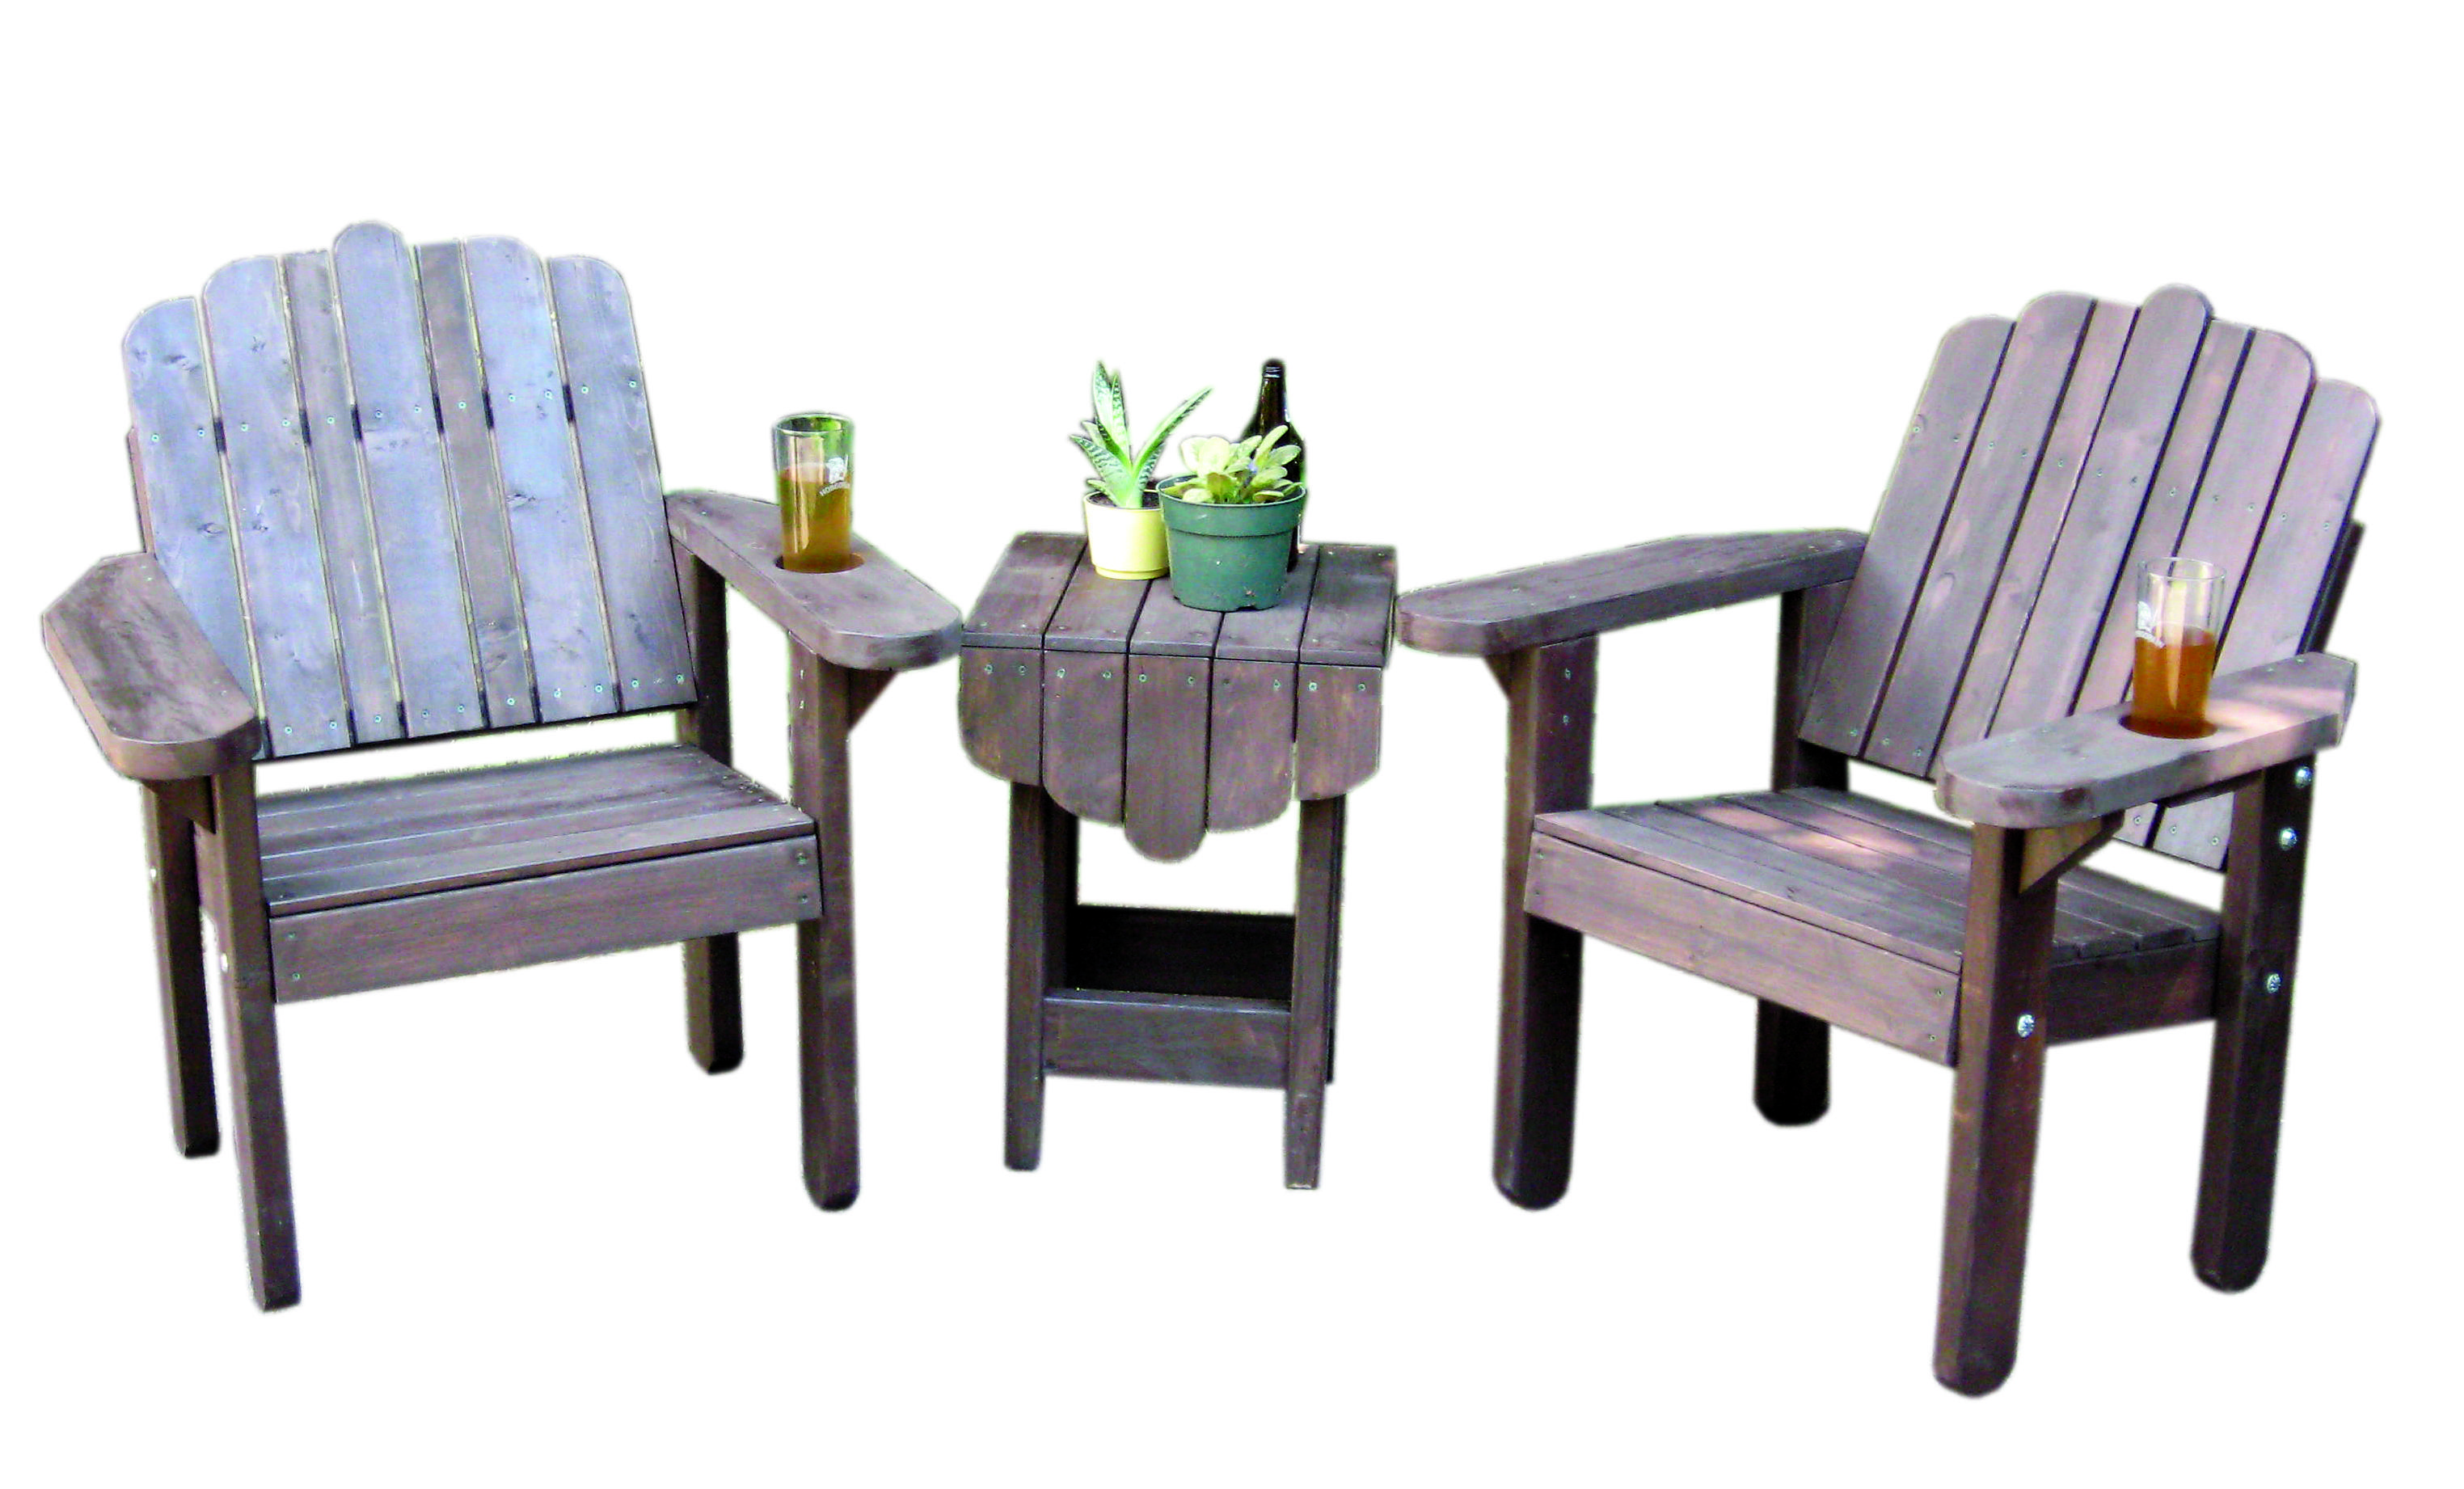 Outdoor Reading Chair Muskoka Style Chair Set We Designed And Built These Chairs